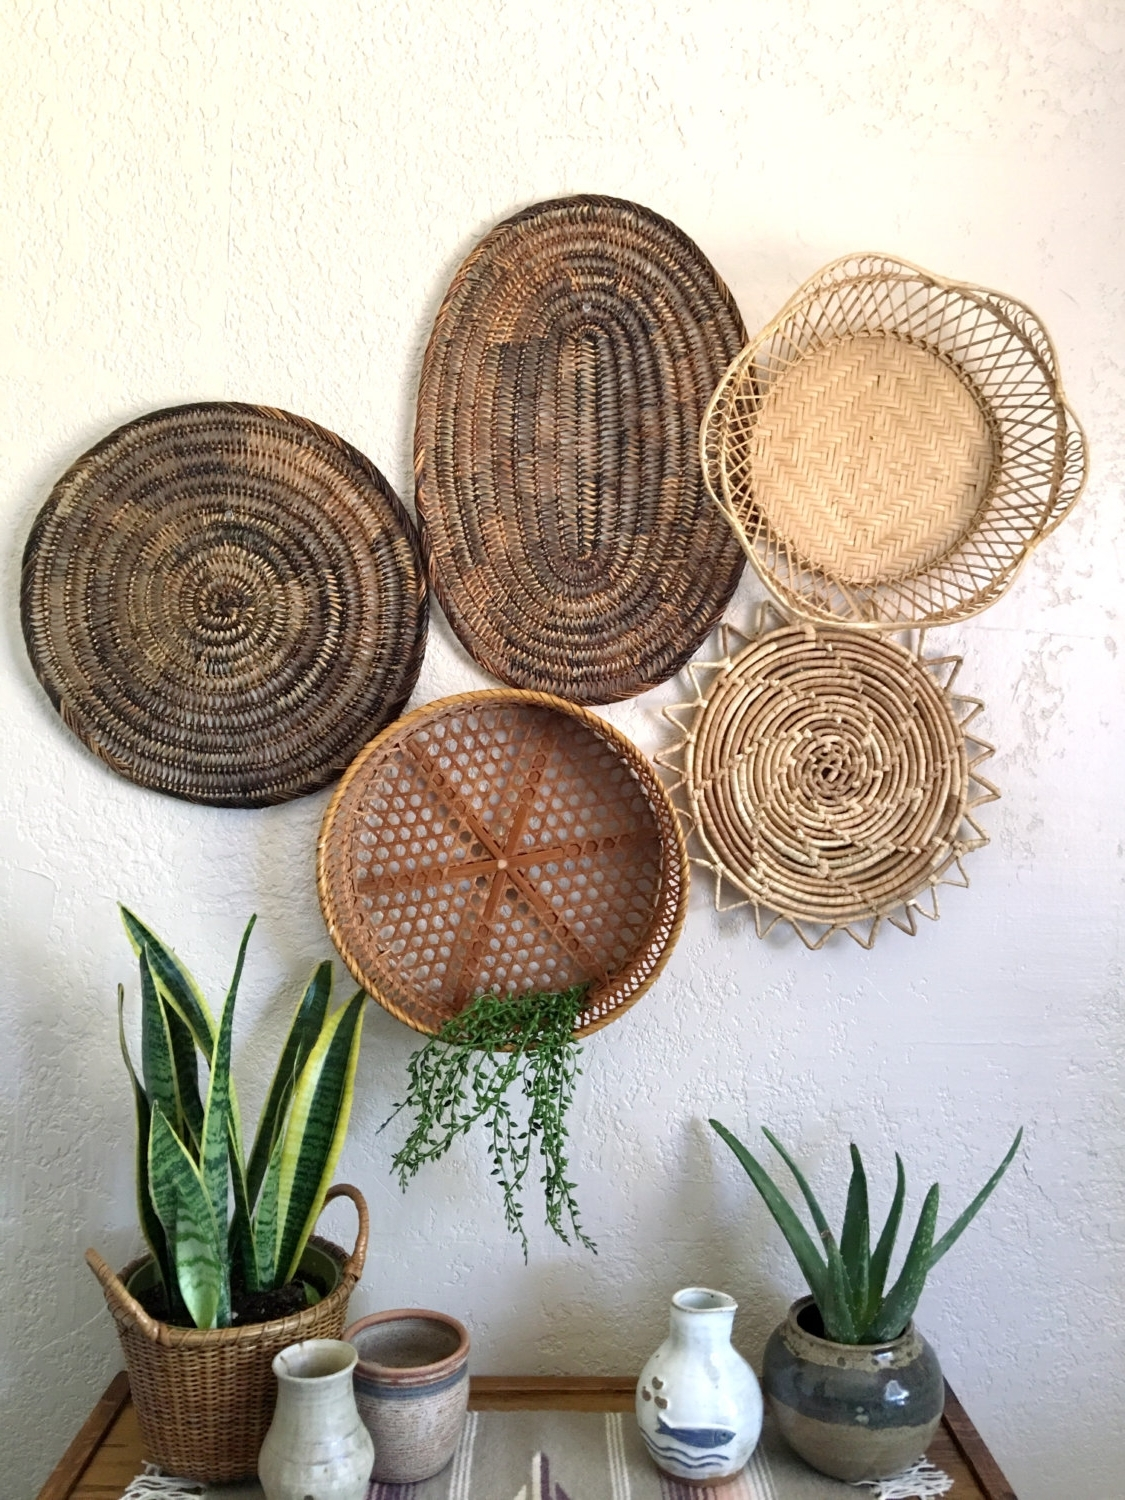 Current Vintage Oval Brown Woven Wicker Basket / Trivet / Placemat, Woven Intended For Woven Basket Wall Art (View 11 of 15)